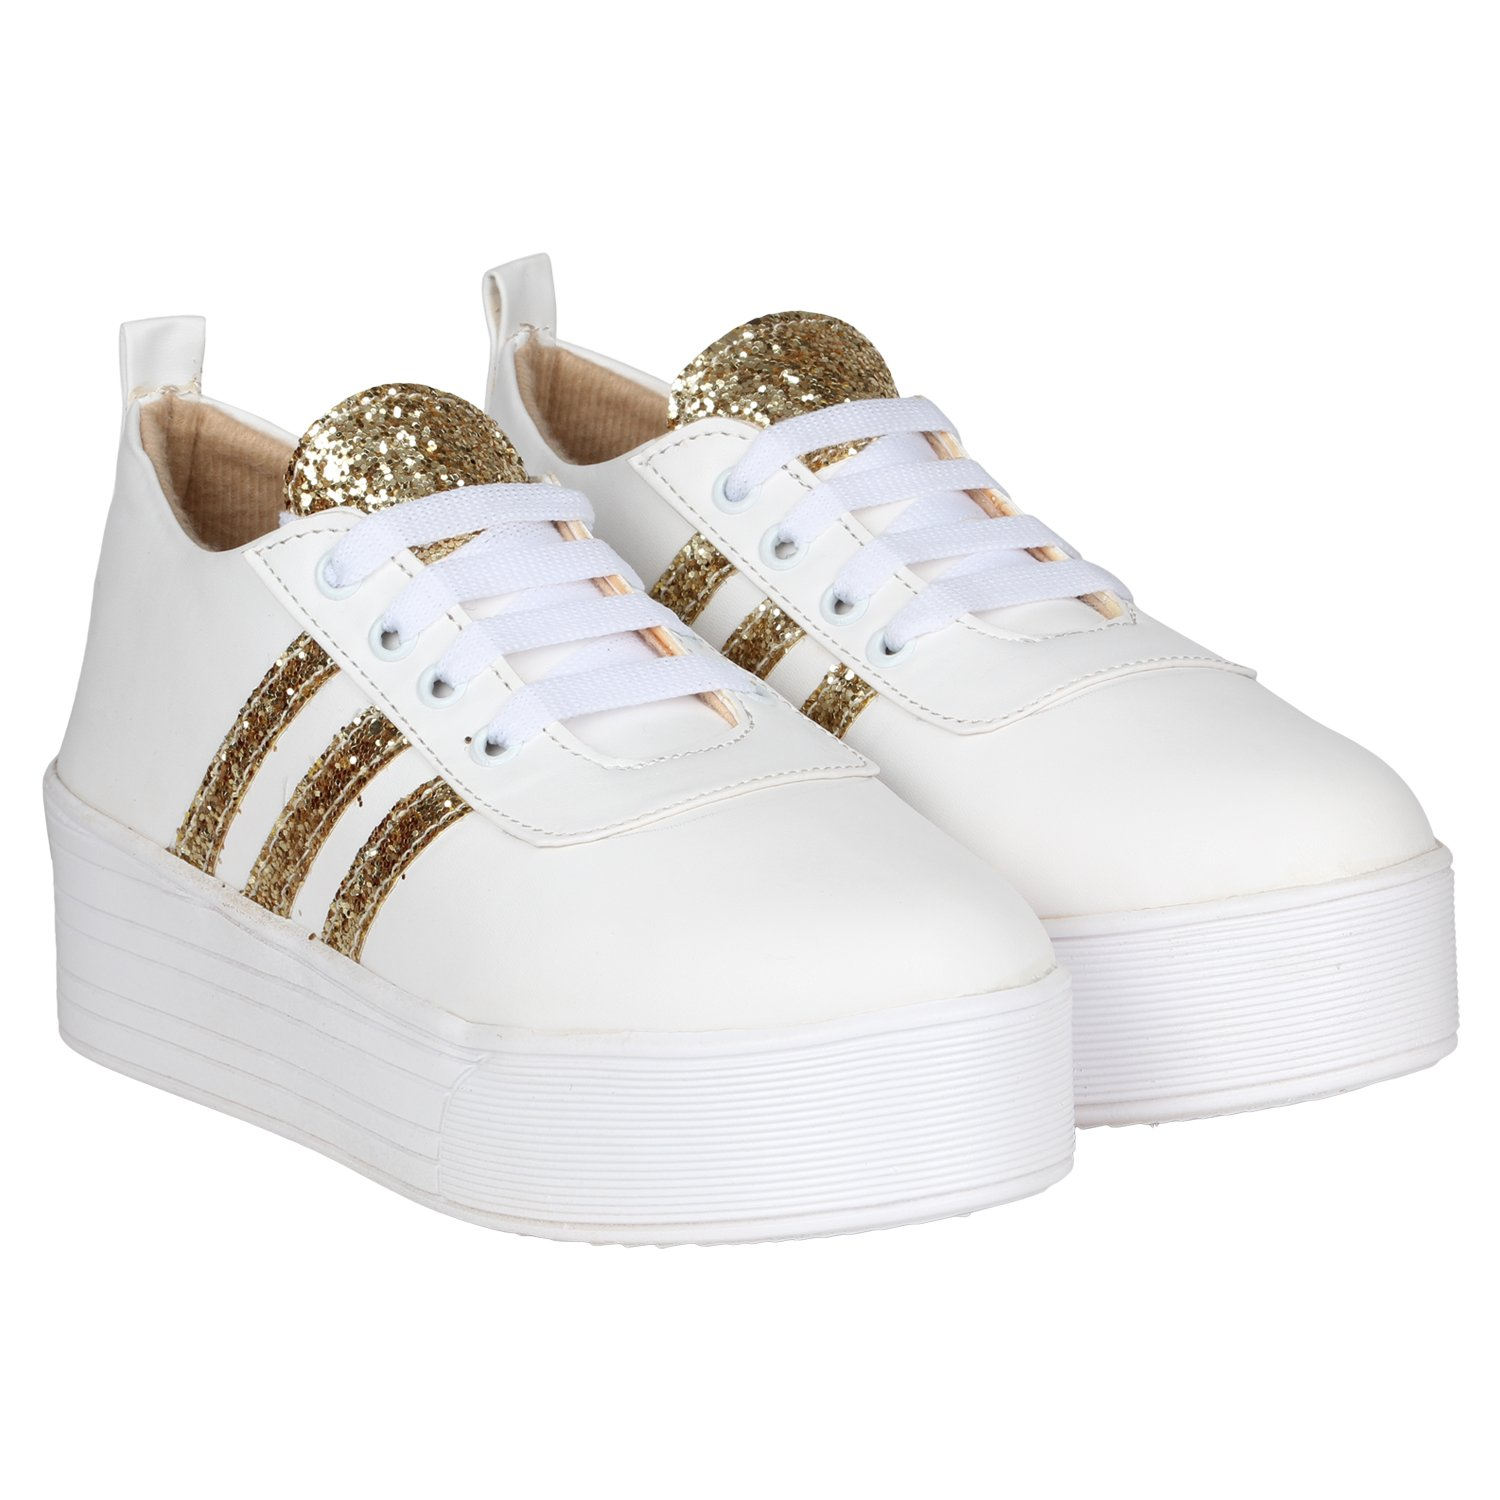 Buy MISTO VAGON WOMEN AND GIRLS CASUAL SHOES CASUAL SNEAKERS PARTY WEAR  SHOES PARTY WEAR SNEAKERS GIRLS SHOES GIRLS CASUAL SHOES GIRLS SNEAKERS  LACE UP SNEAKERS LACE UP CASUAL SPORT SHOES RUNNING